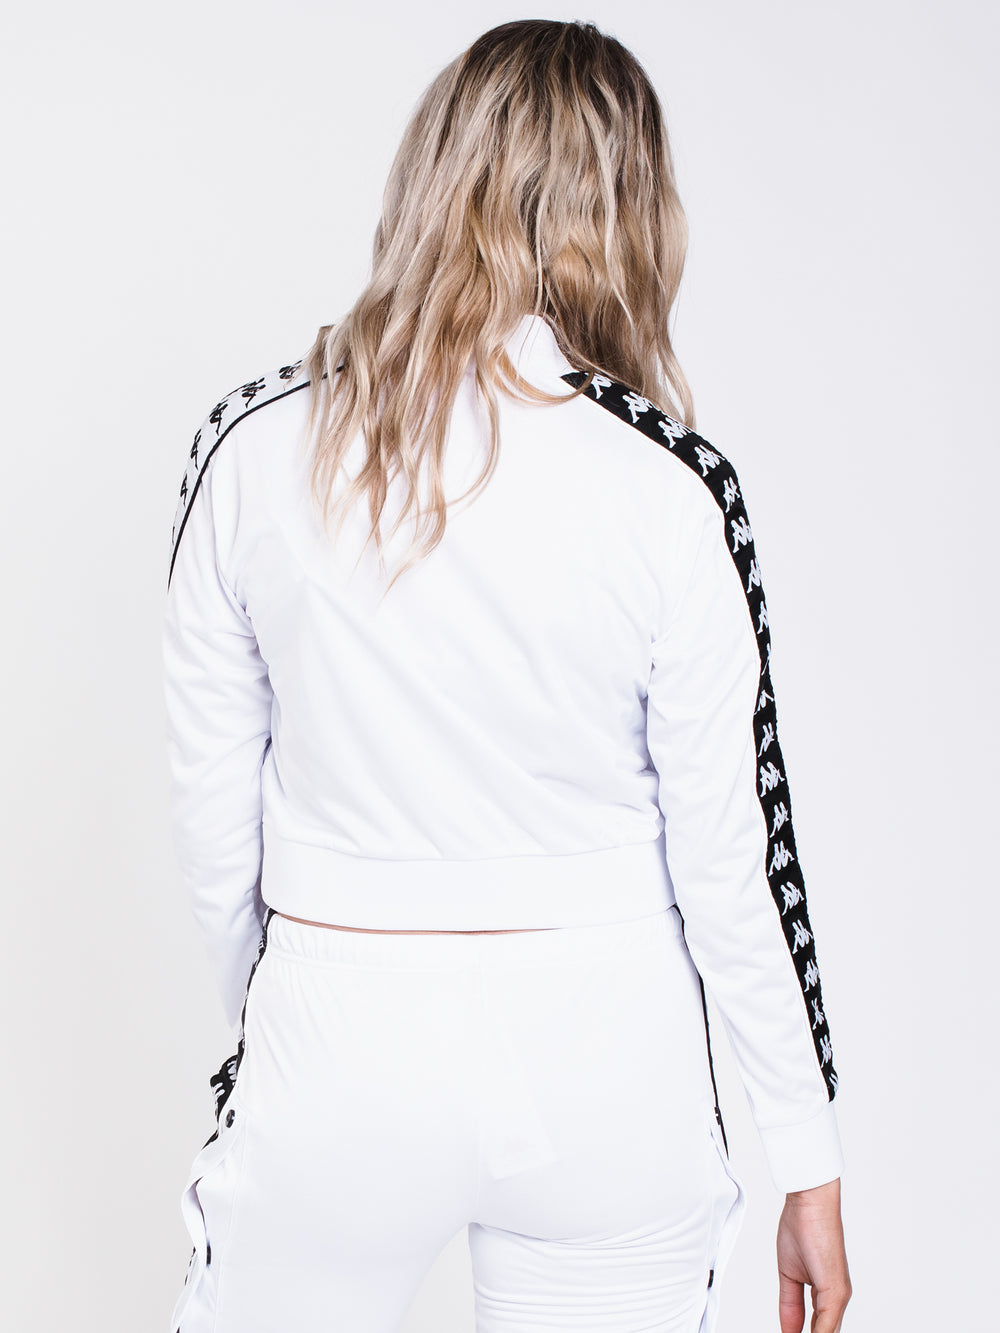 WOMENS BANDA ASBER - WHITE/BLACK